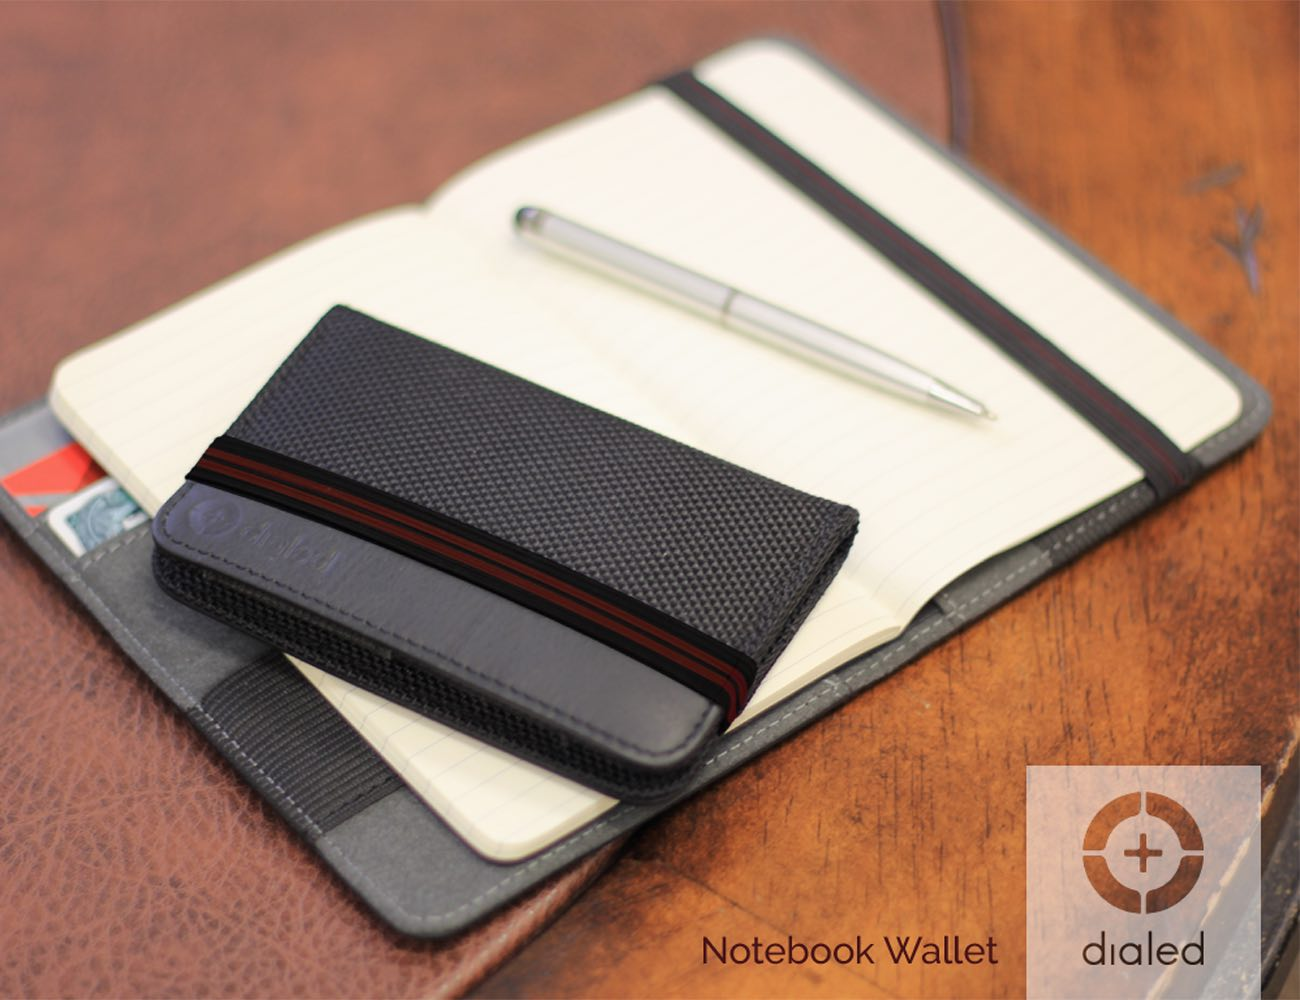 Dialed Notebook Wallet